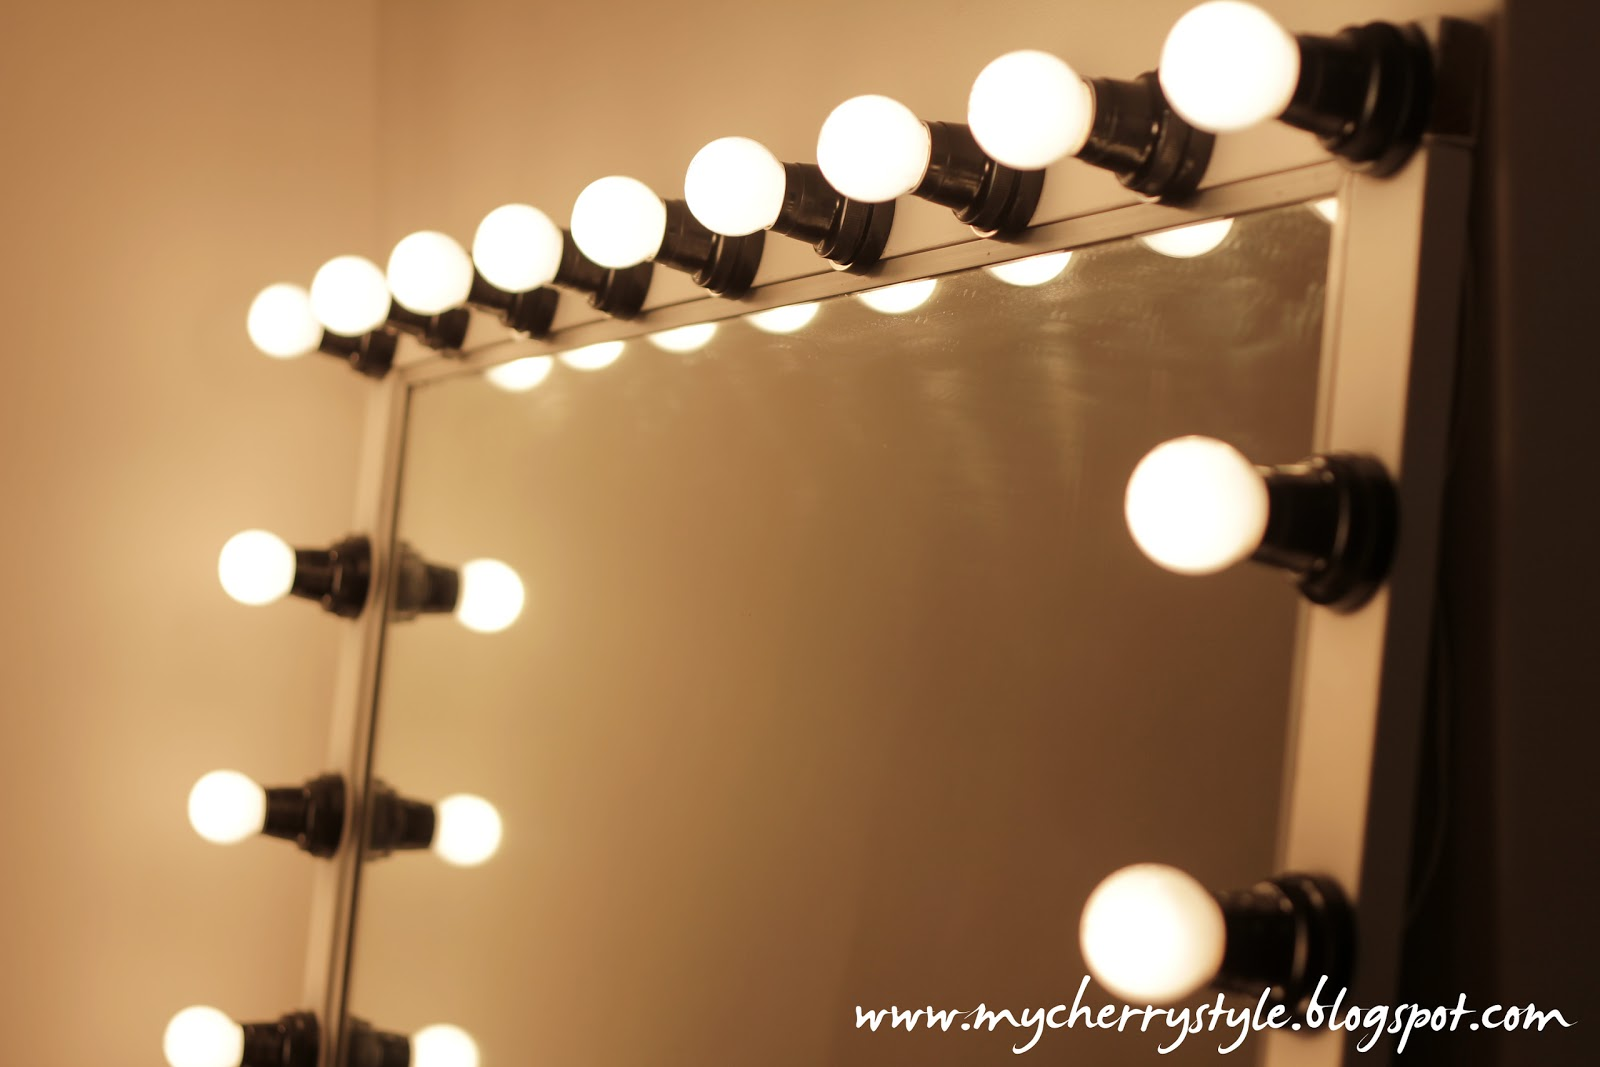 Vanity Lights Hollywood : DIY Hollywood-style mirror with lights! Tutorial from scratch. for real.